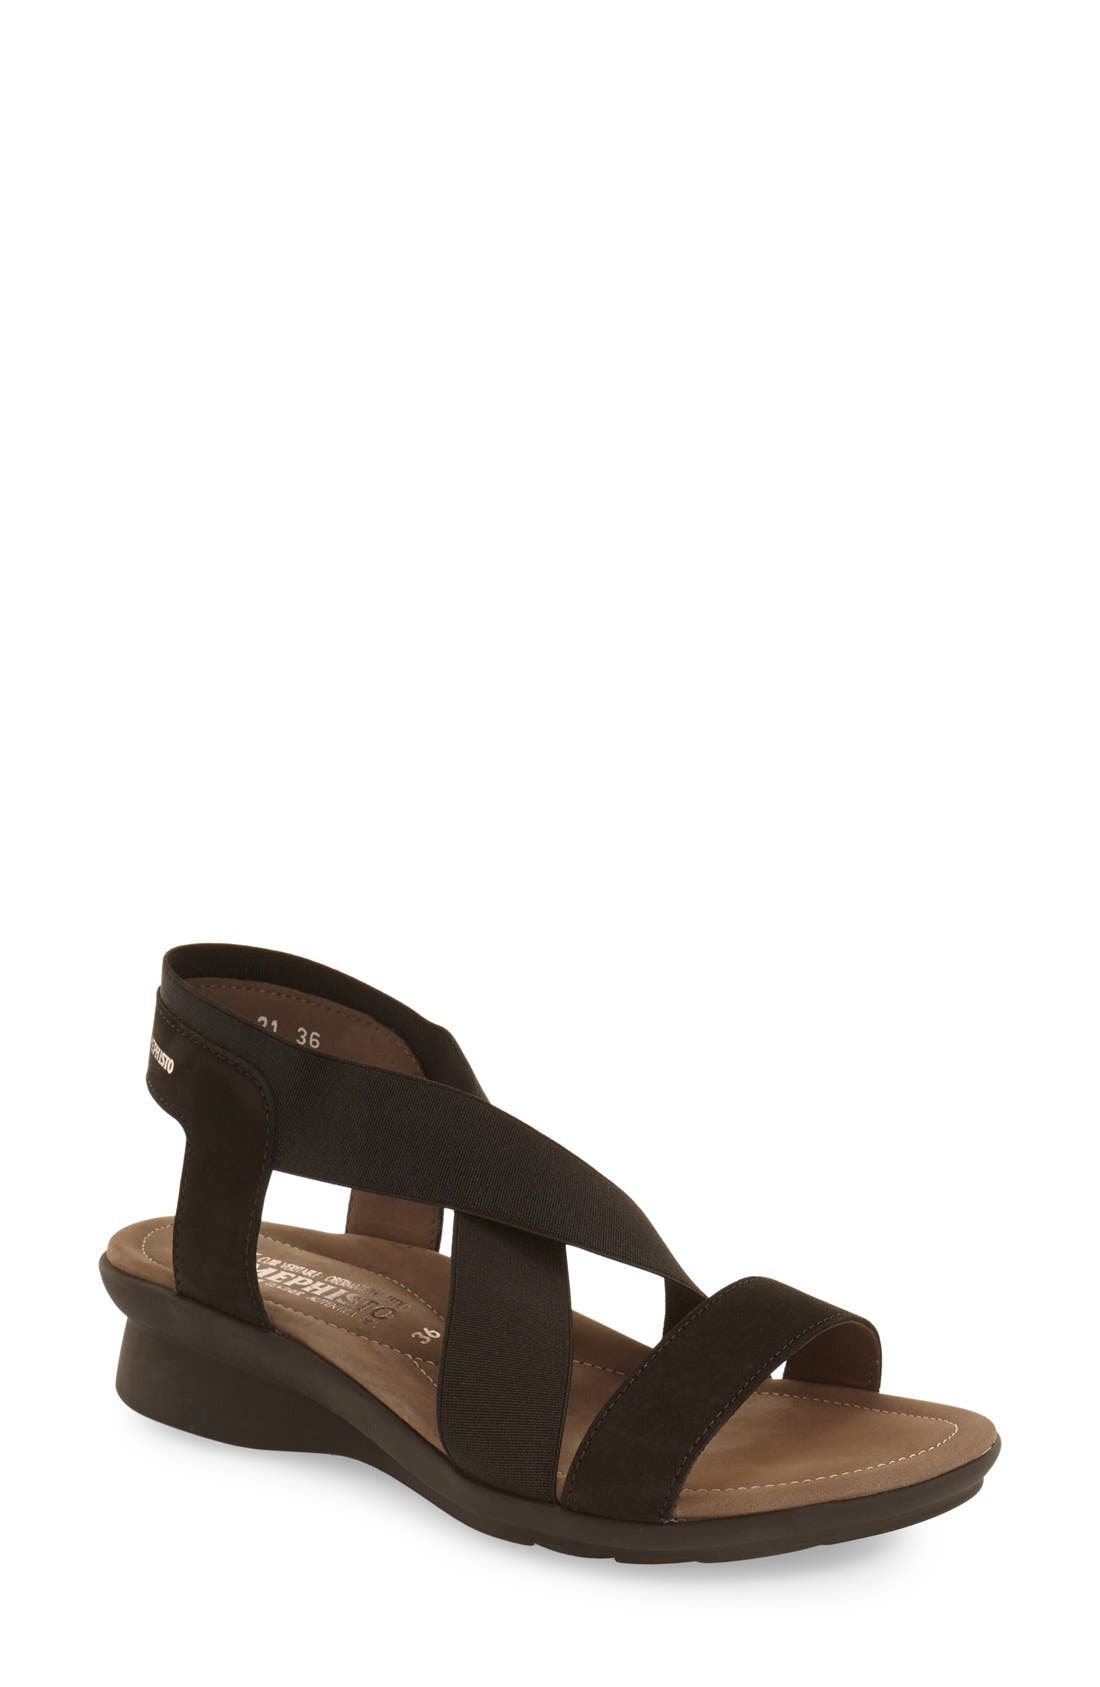 'Pastora' Sandal,                         Main,                         color, 002